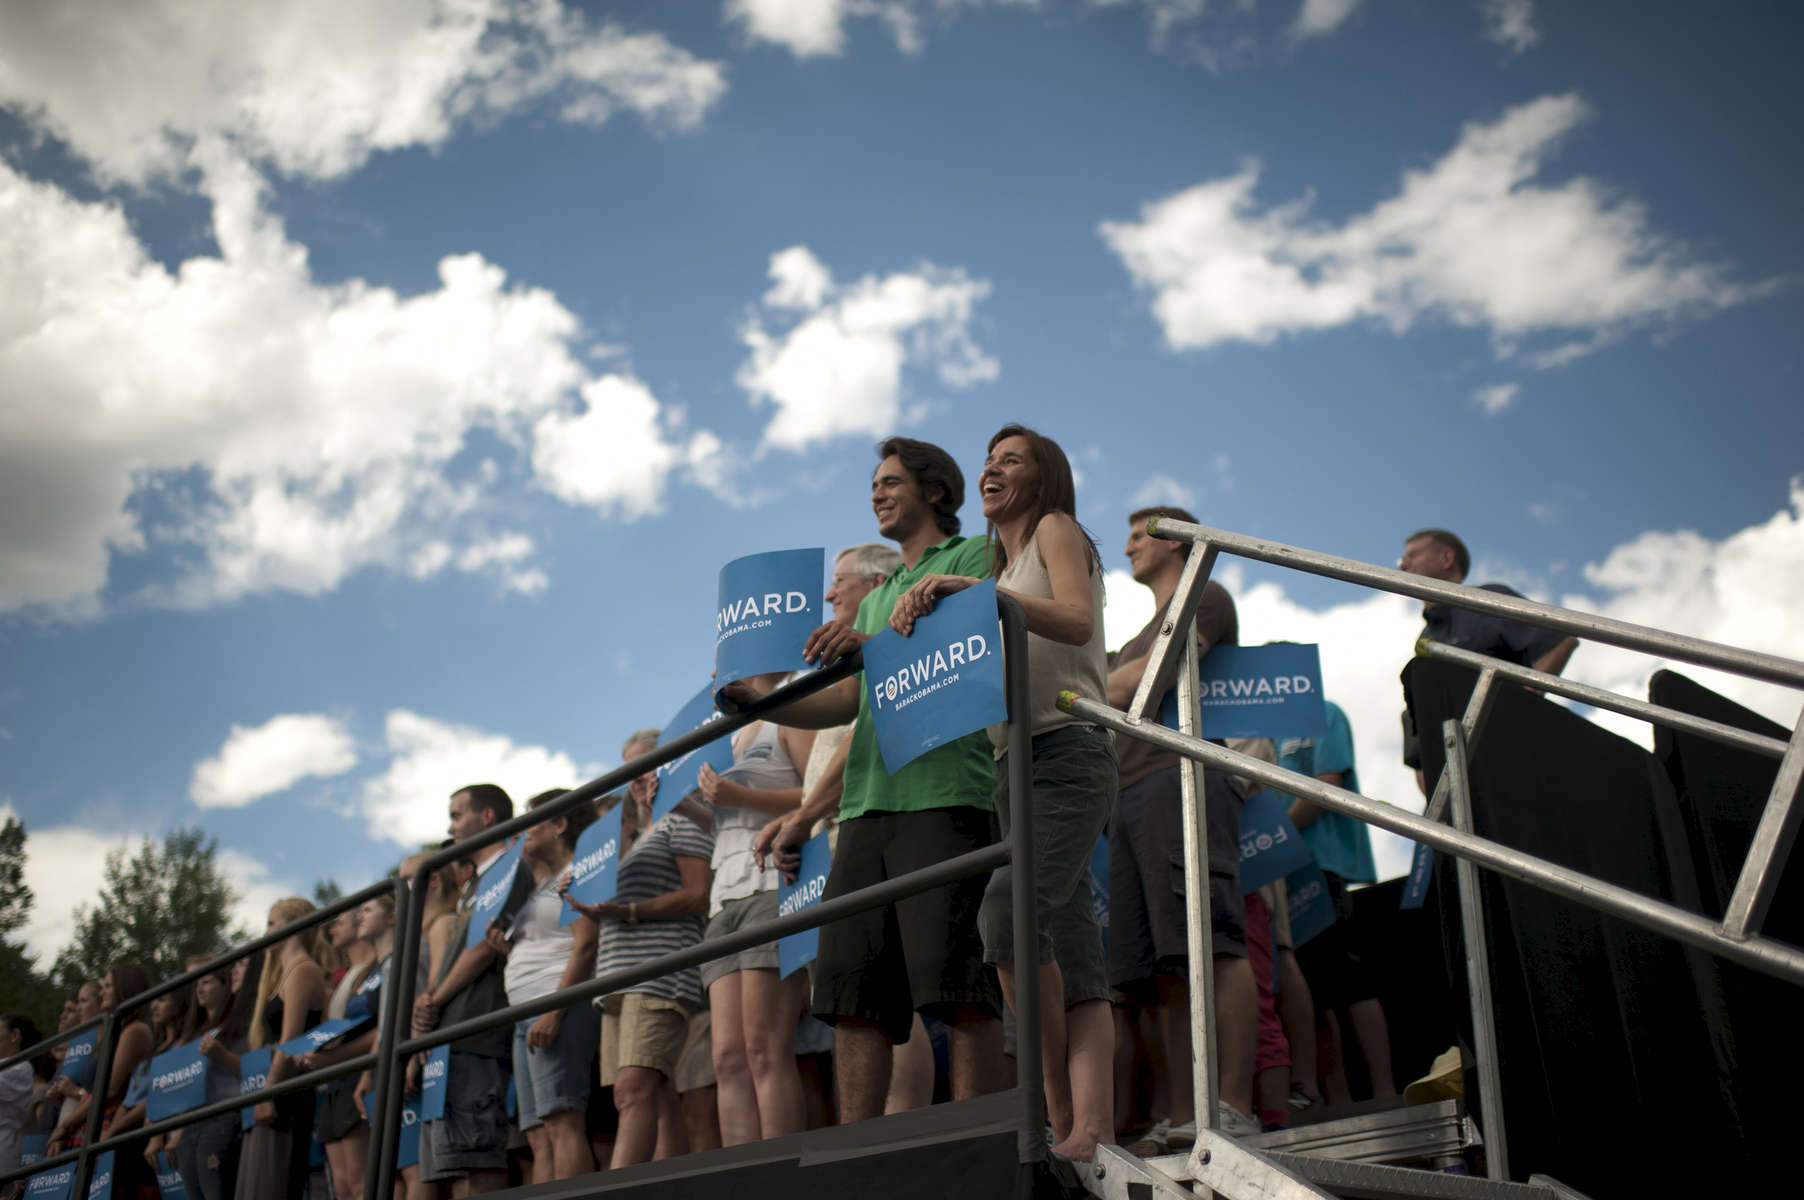 September 2, 2012 - Boulder, CO: Supporters listen as President Barack Obama speaks at a campaign event at the University of Colorado Boulder. (Scout Tufankjian for Obama for America/Polaris)